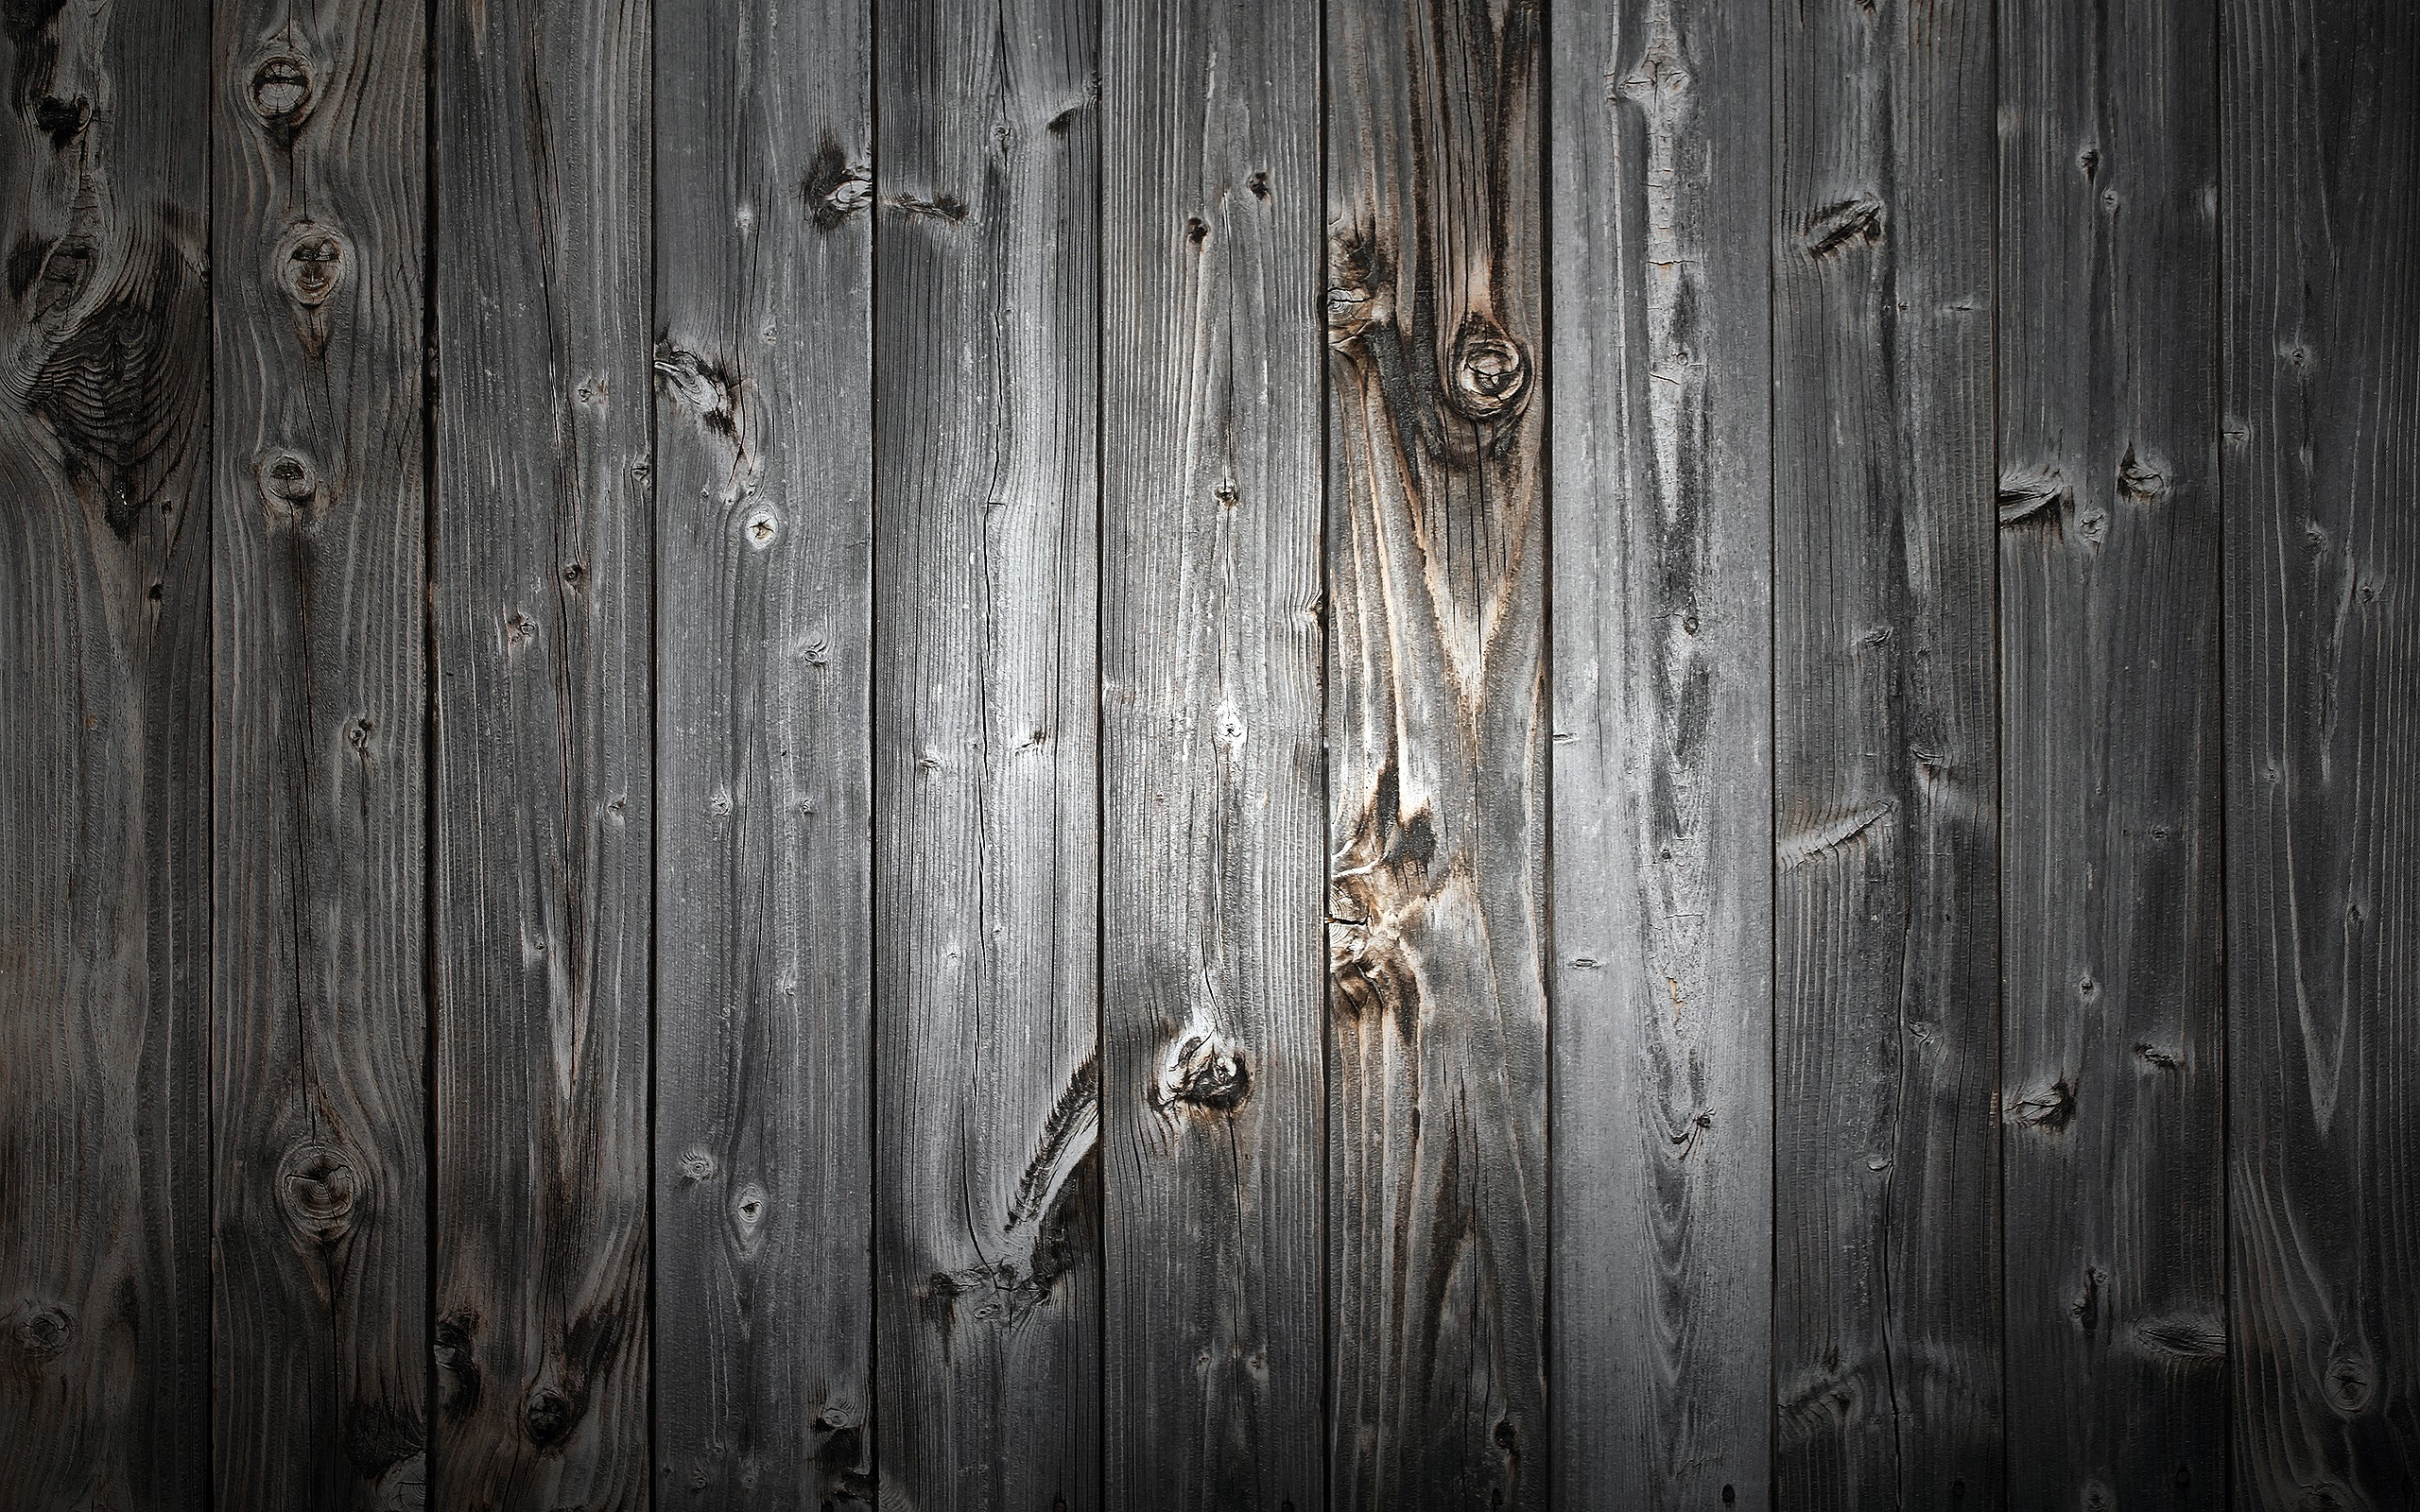 Download Wood Textures Barn Wallpaper 2560x1600 Full HD Wallpapers 2560x1600